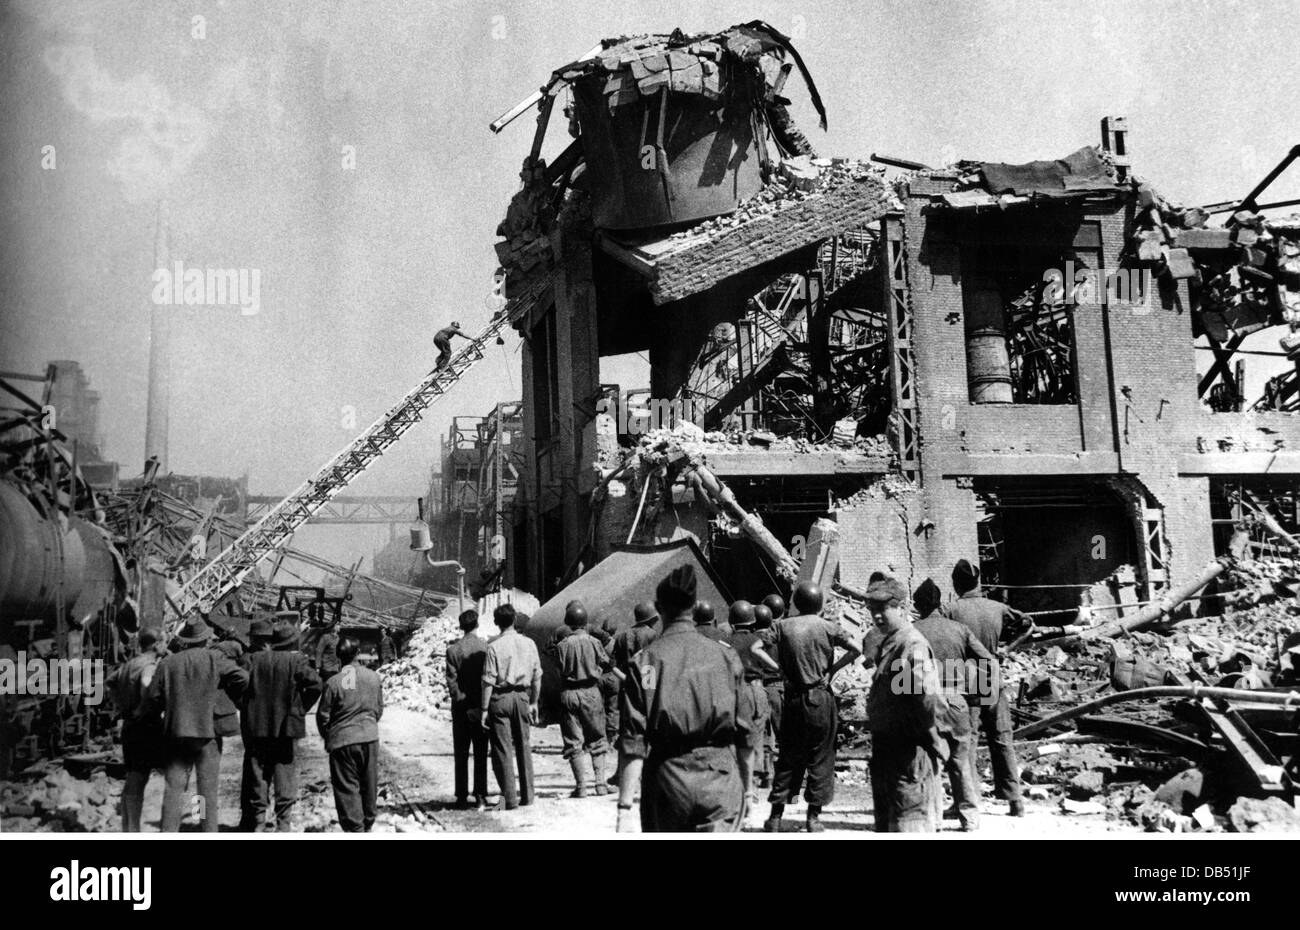 disasters, explosions, BASF, explosion of a leak tank wagon with dimethyl ether, Ludwigshafen, 28.7.1948, Additional - Stock Image